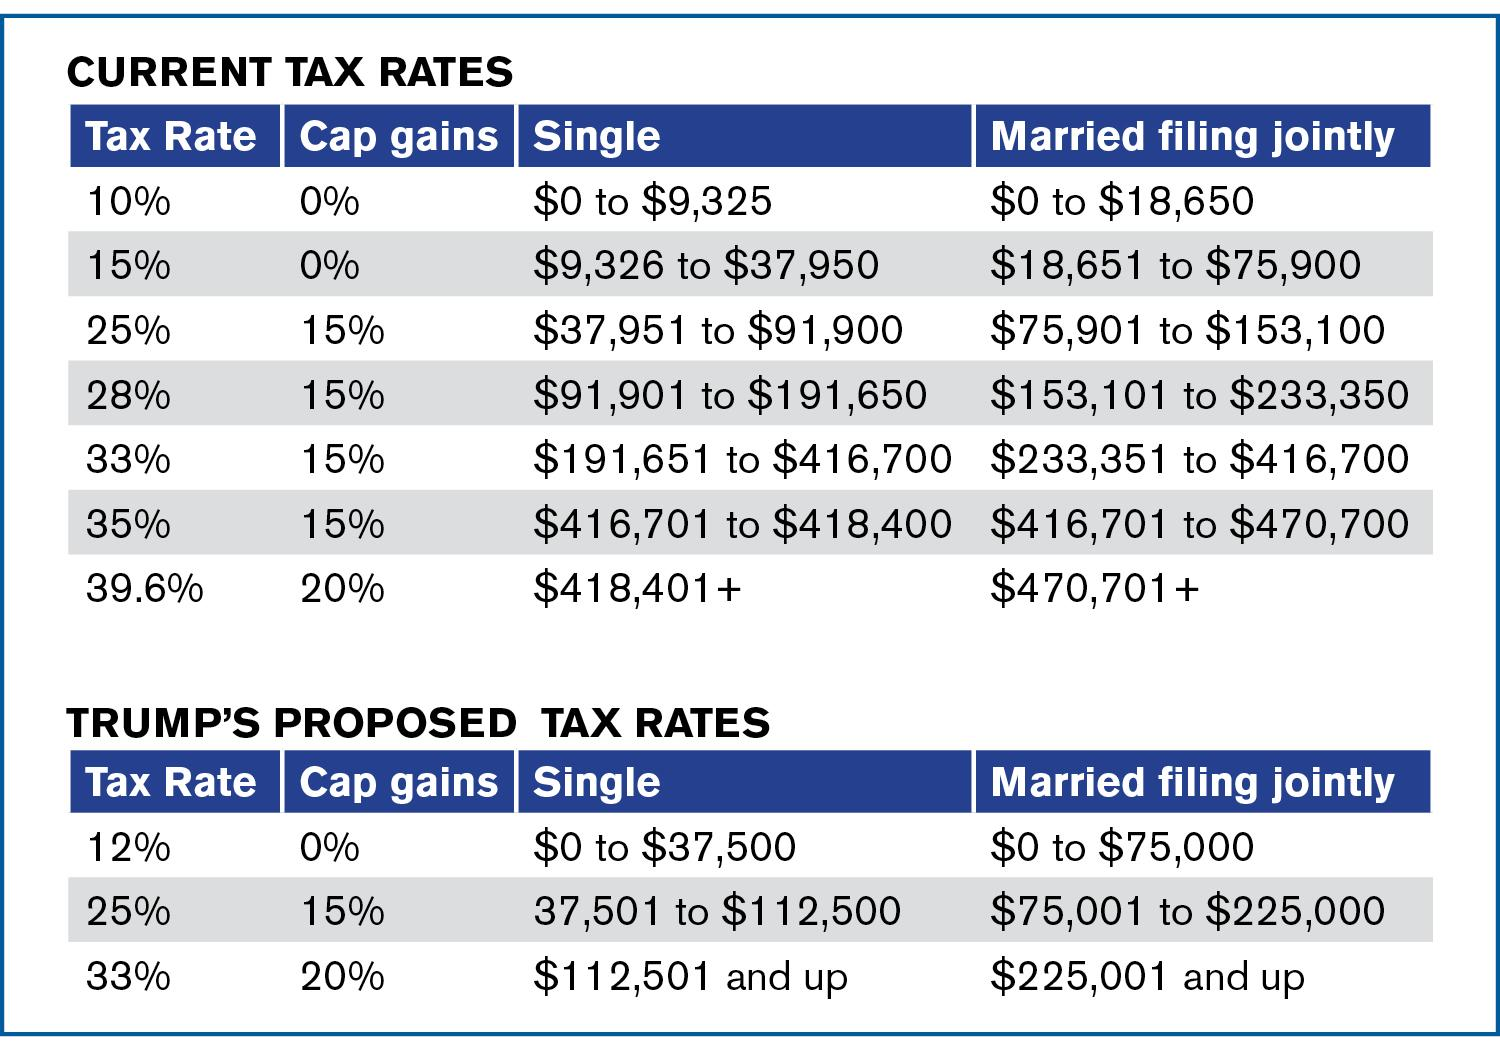 Current tax rates compared with President Trump's proposed tax rates.